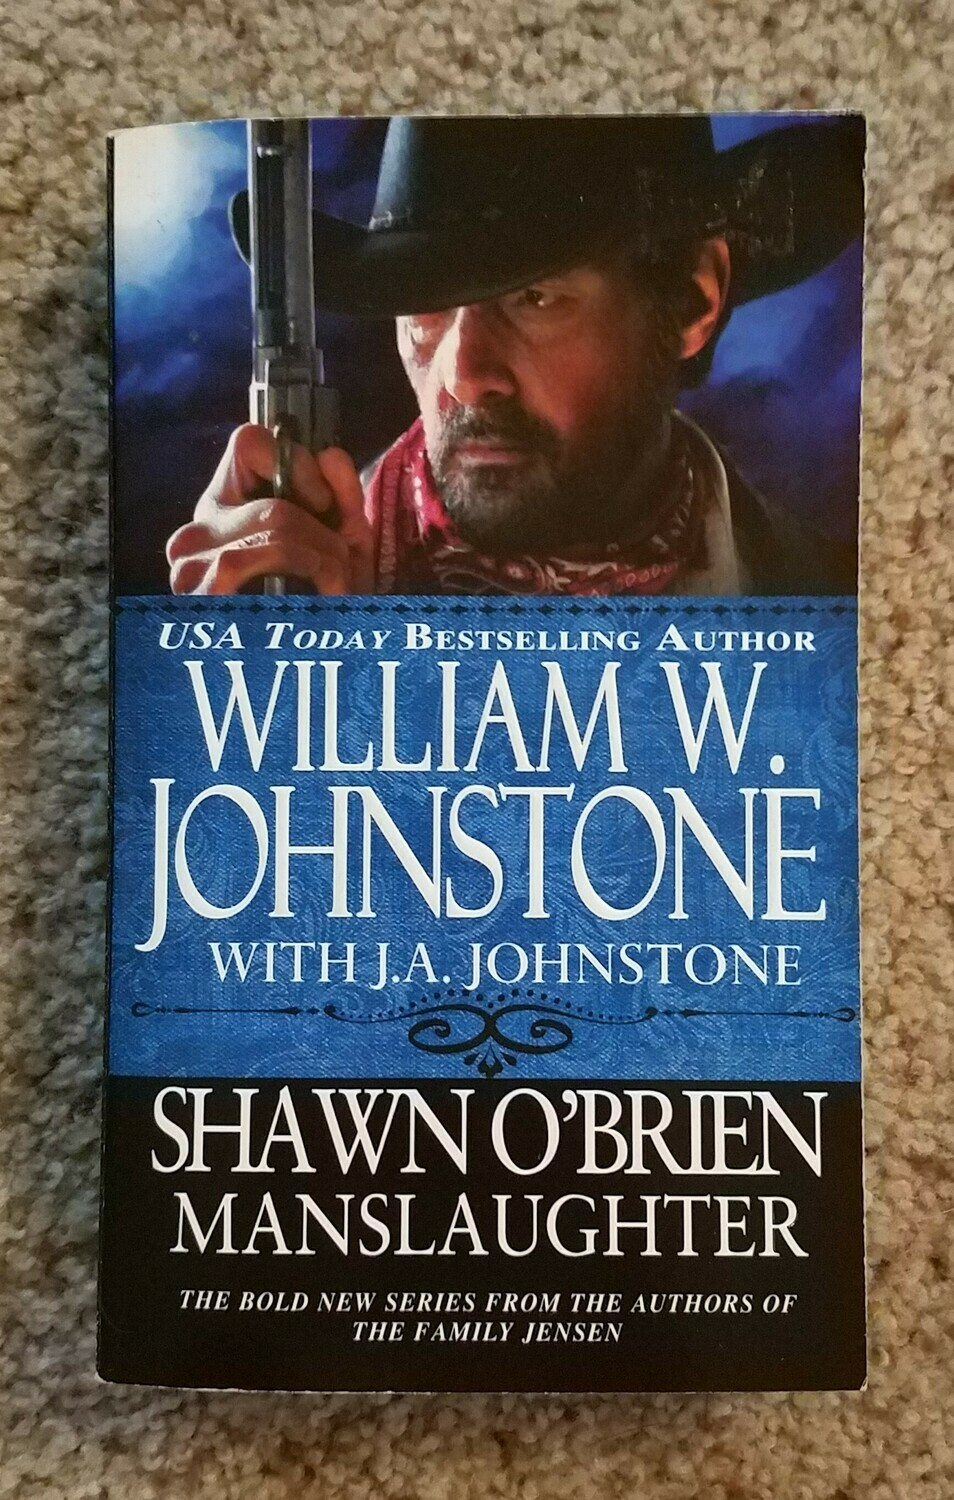 Shawn O'Brien: Manslaughter by William W. Johnstone with J.A. Johnstone